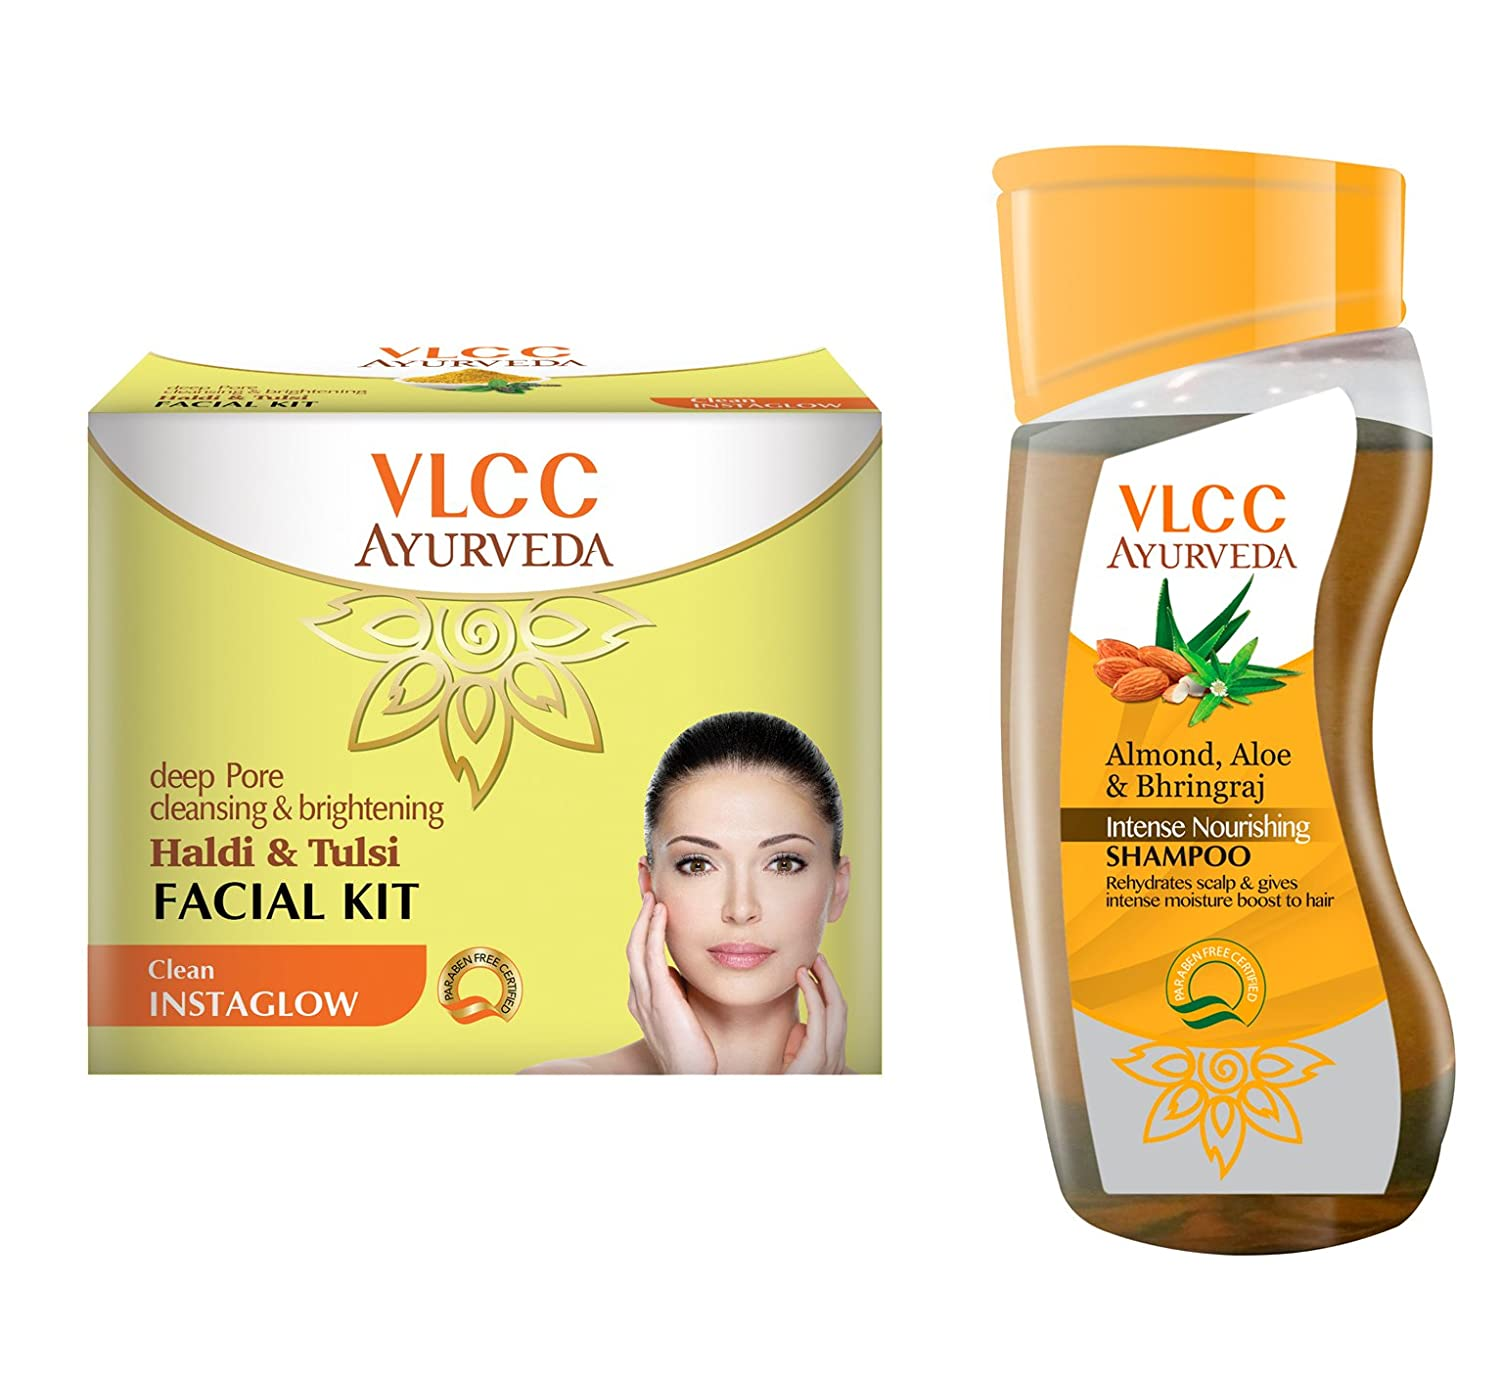 VLCC Haldi Tulsi Facial Kit and Ayurveda Shampoo Combo